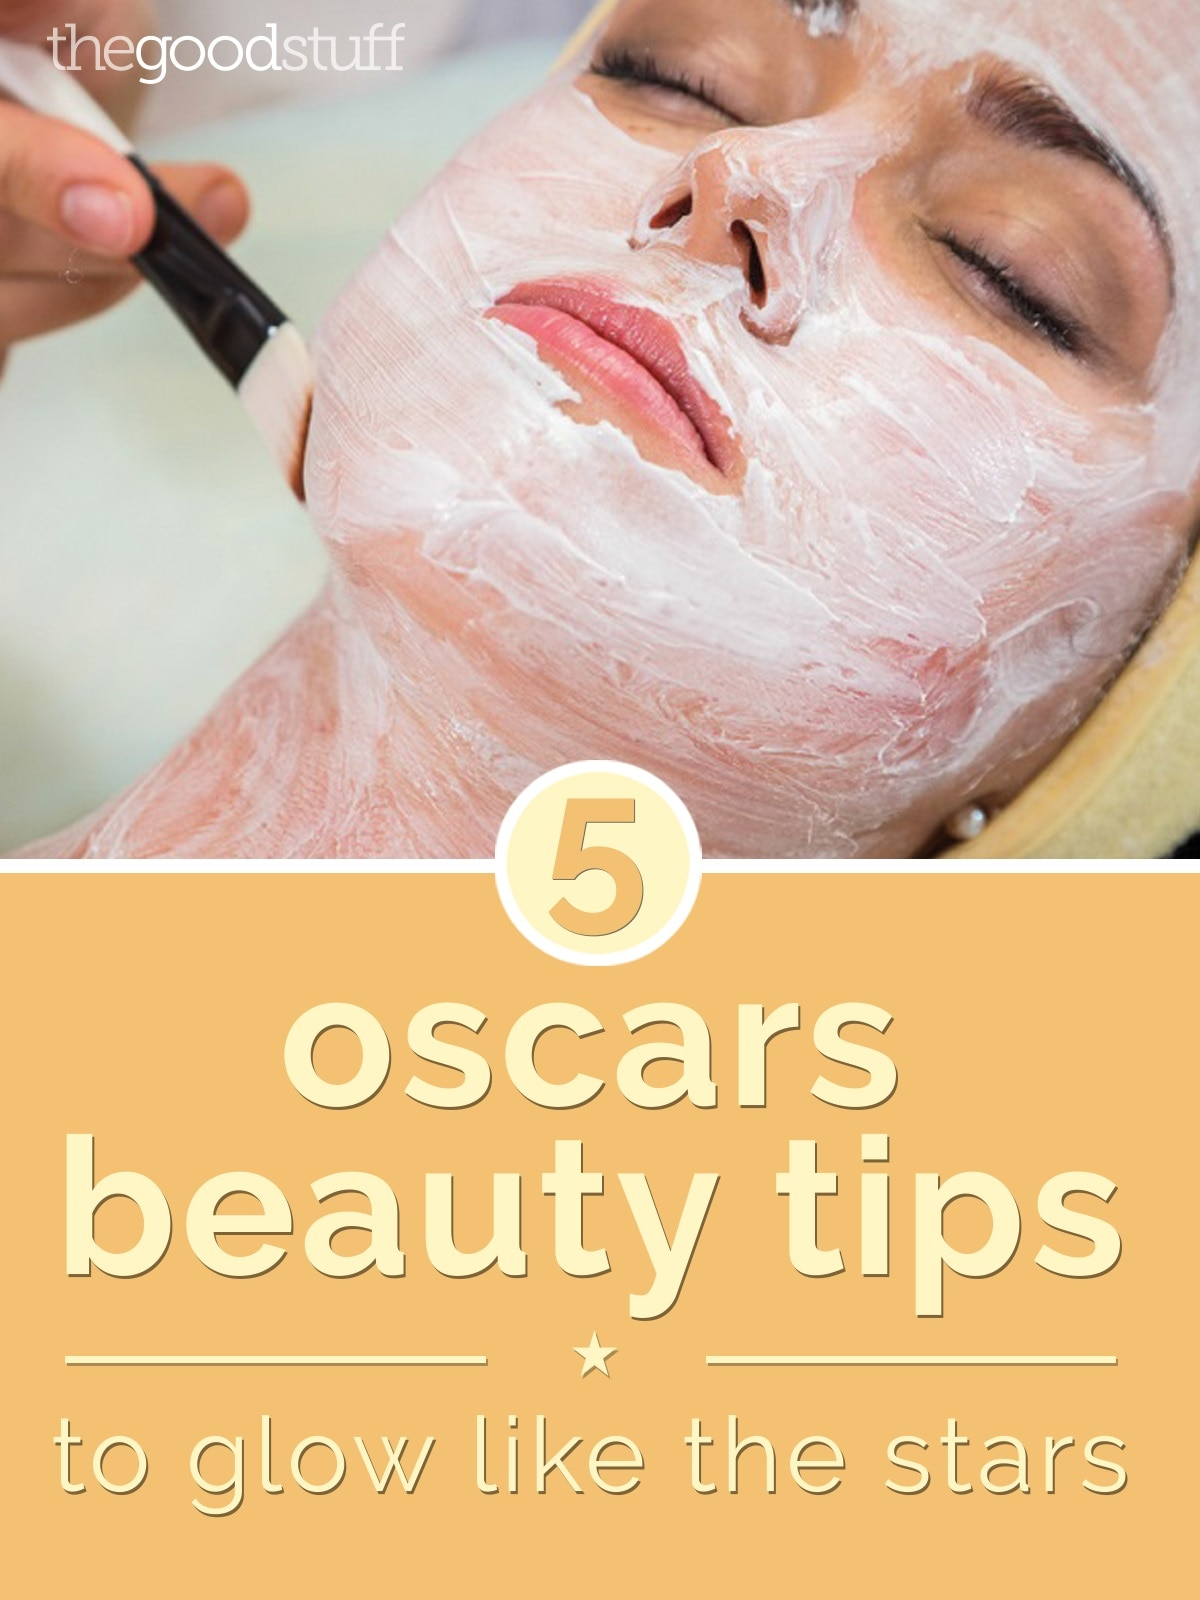 self-oscars-beauty-tips